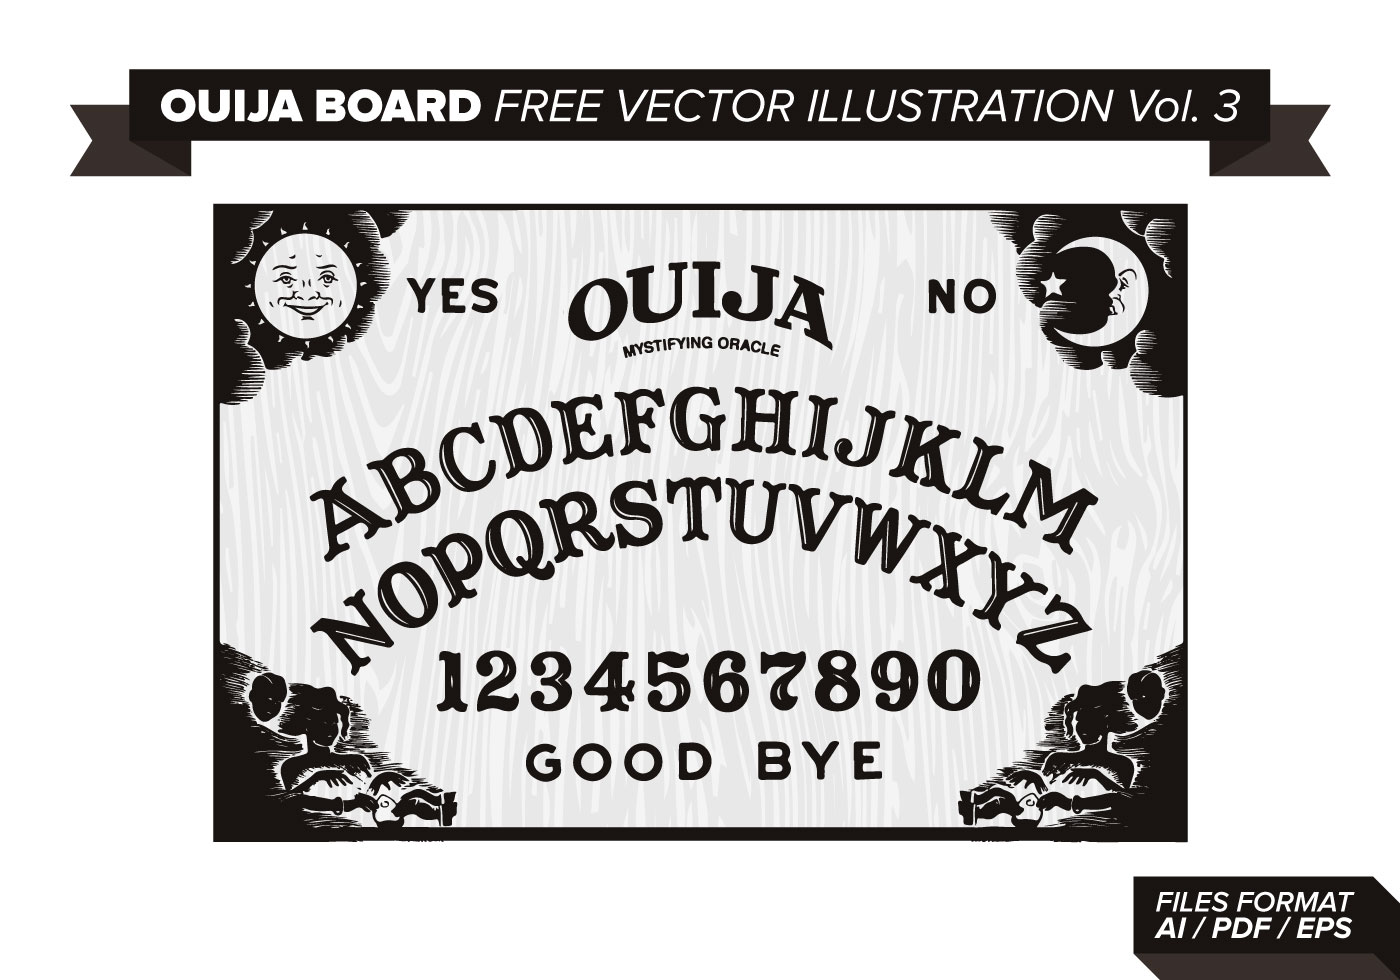 ouija board free vector illustration vol 3 download basketball clipart black and white images basketball clipart black and white with dots